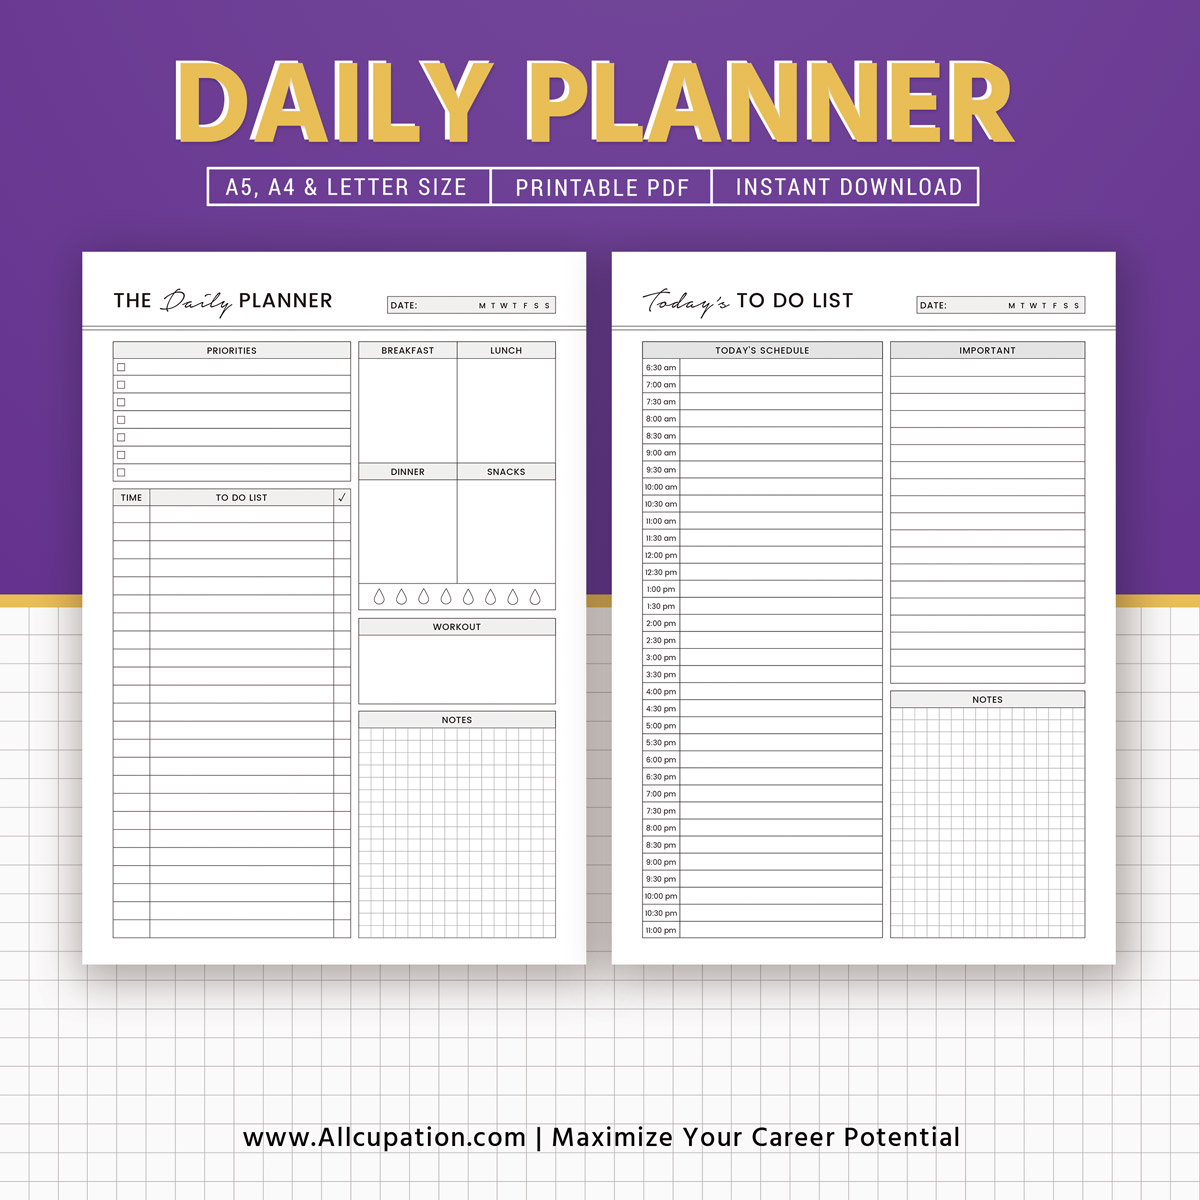 Daily Planner Daily Schedule To Do List Printable